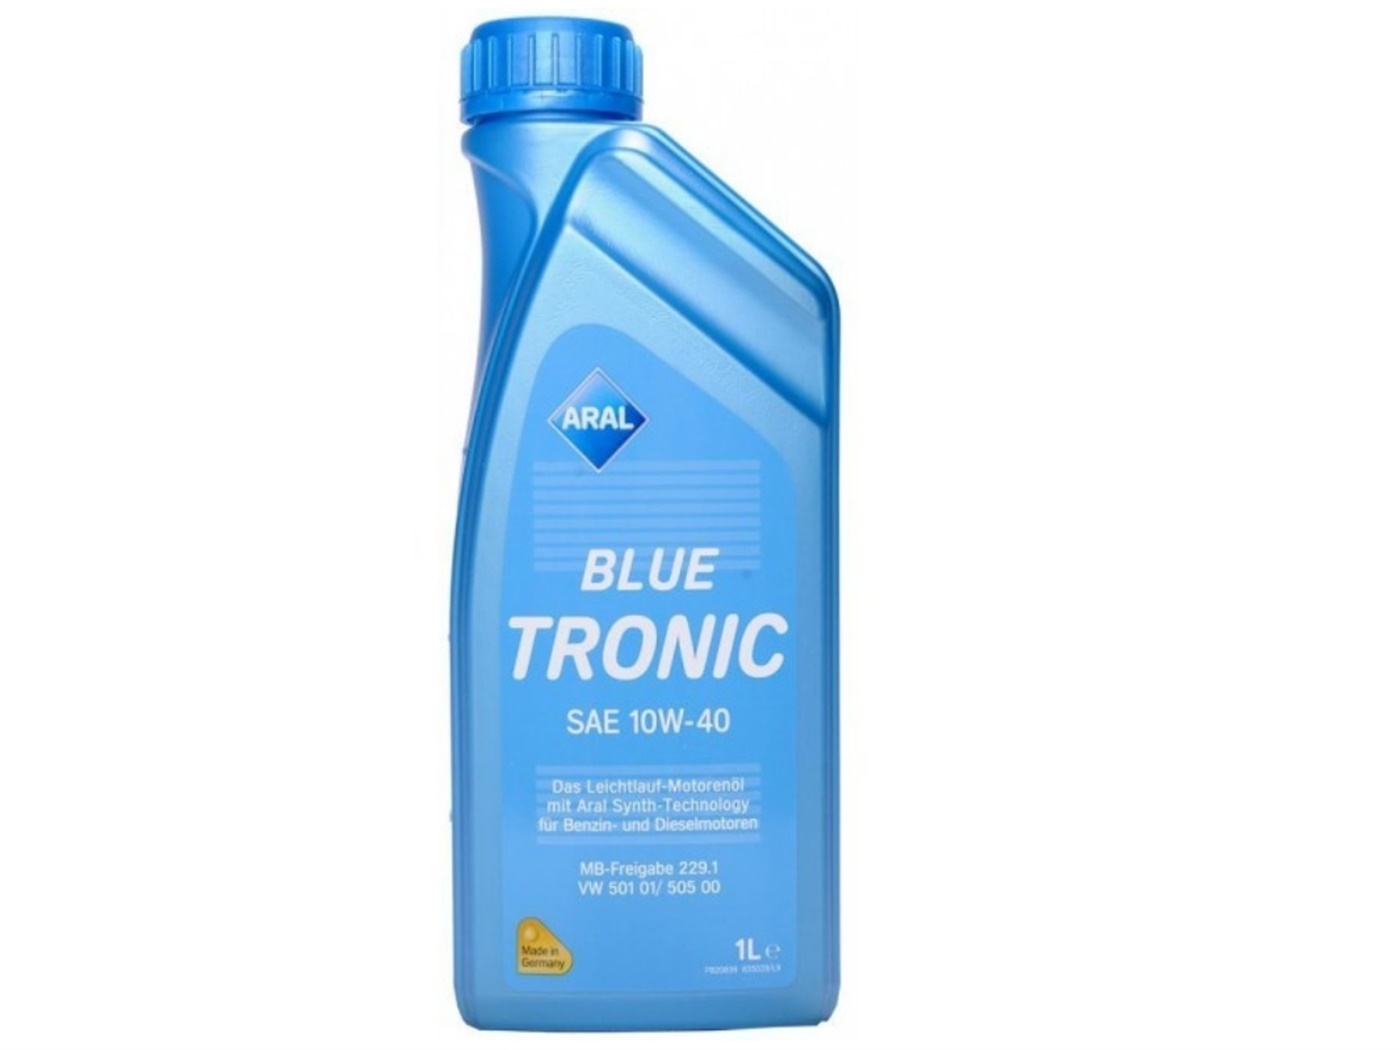 Aral   bluetronic   1 0 w 4 0   1